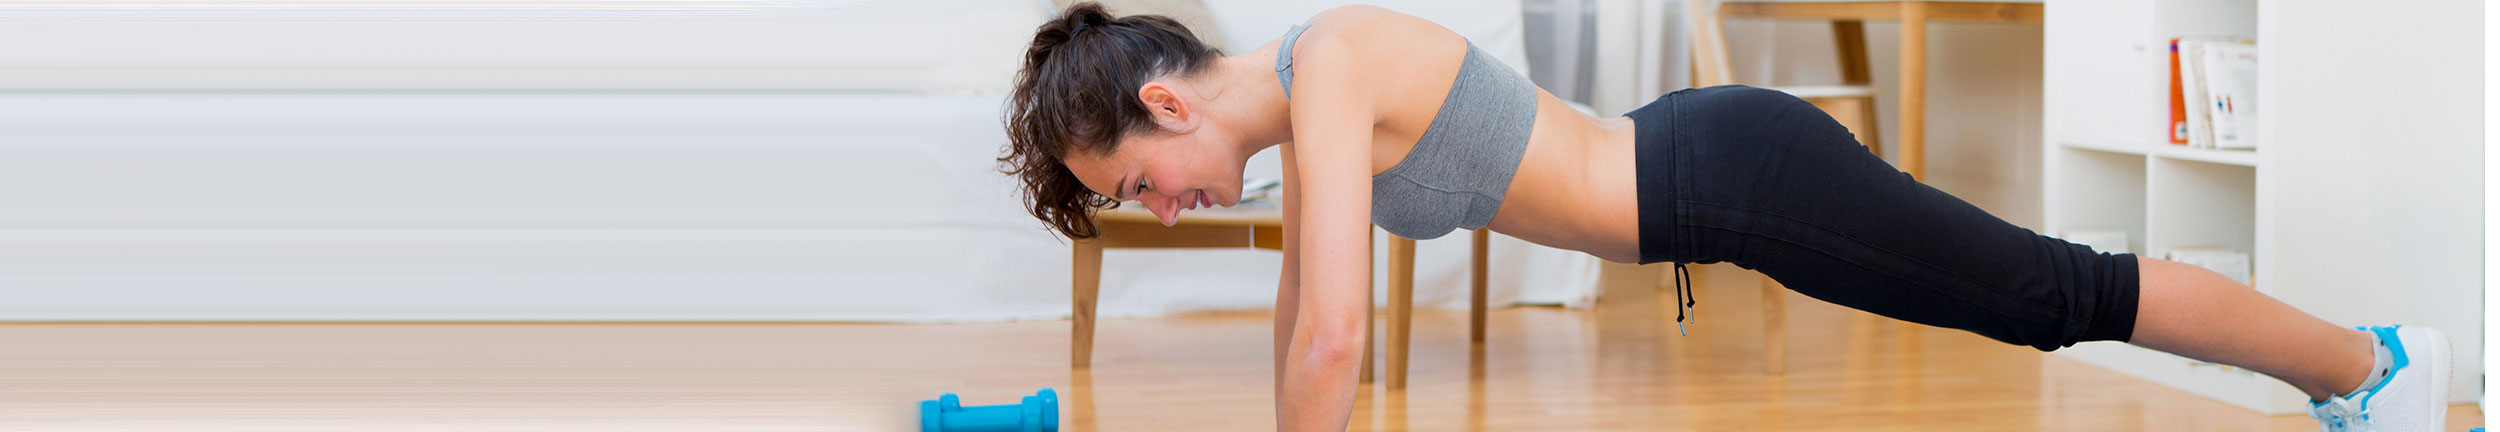 Woman doing plank to help her CoolSculpting results on her stomach.